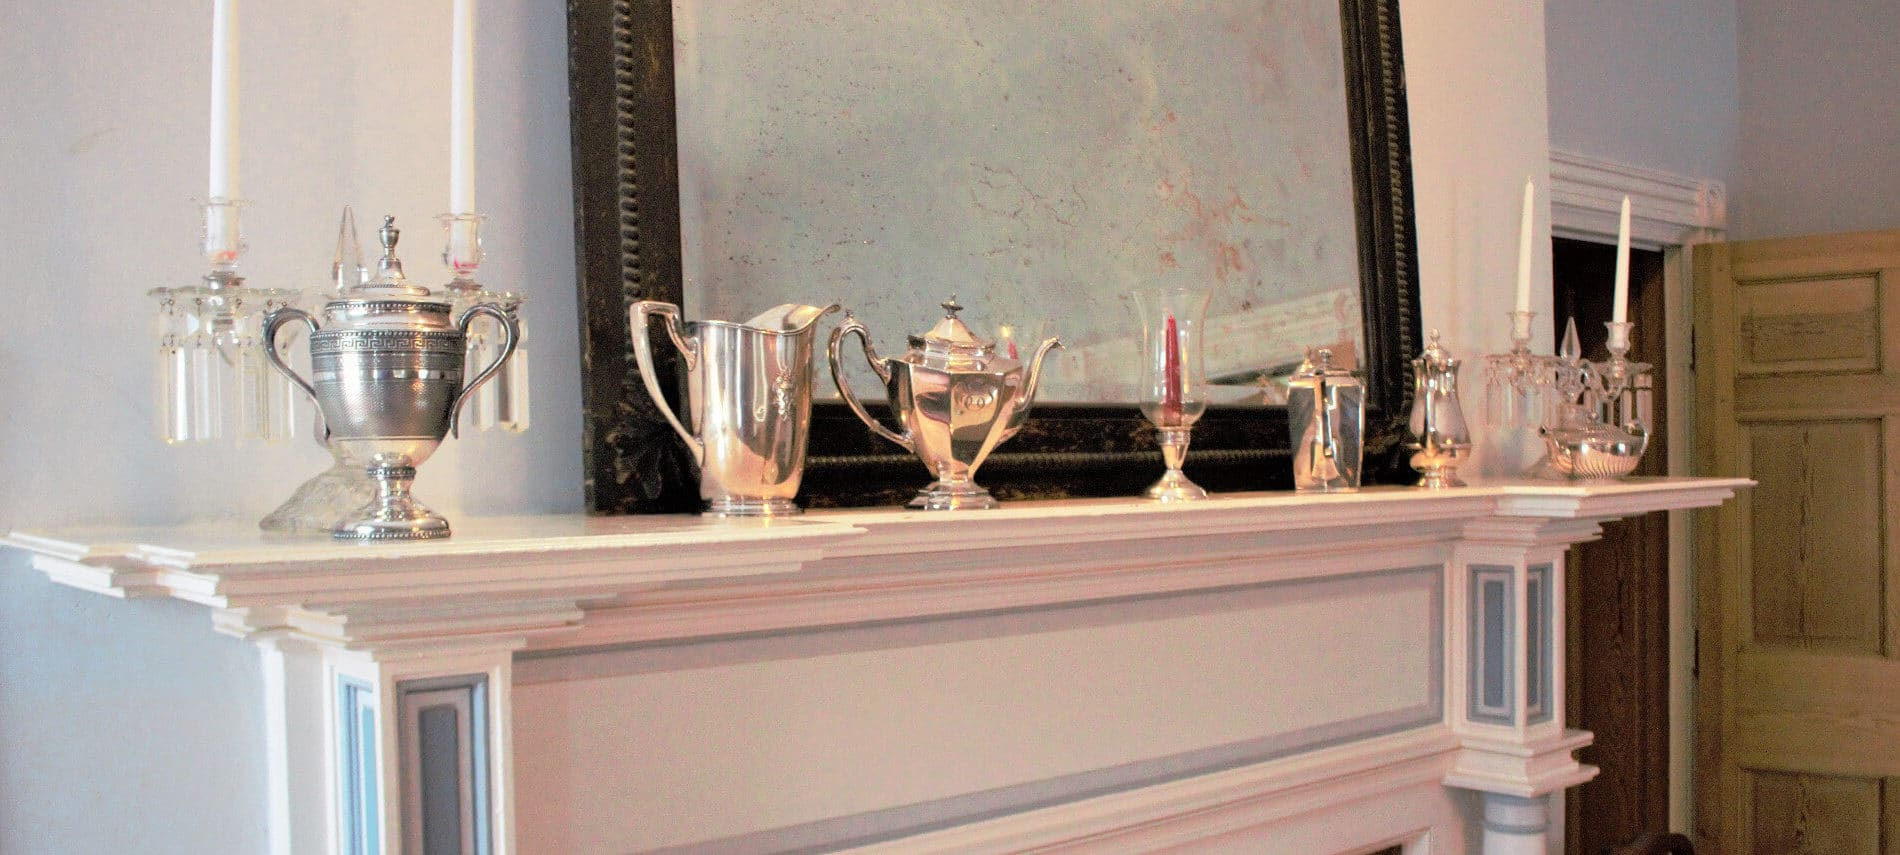 White fireplace mantel with silver cups on top